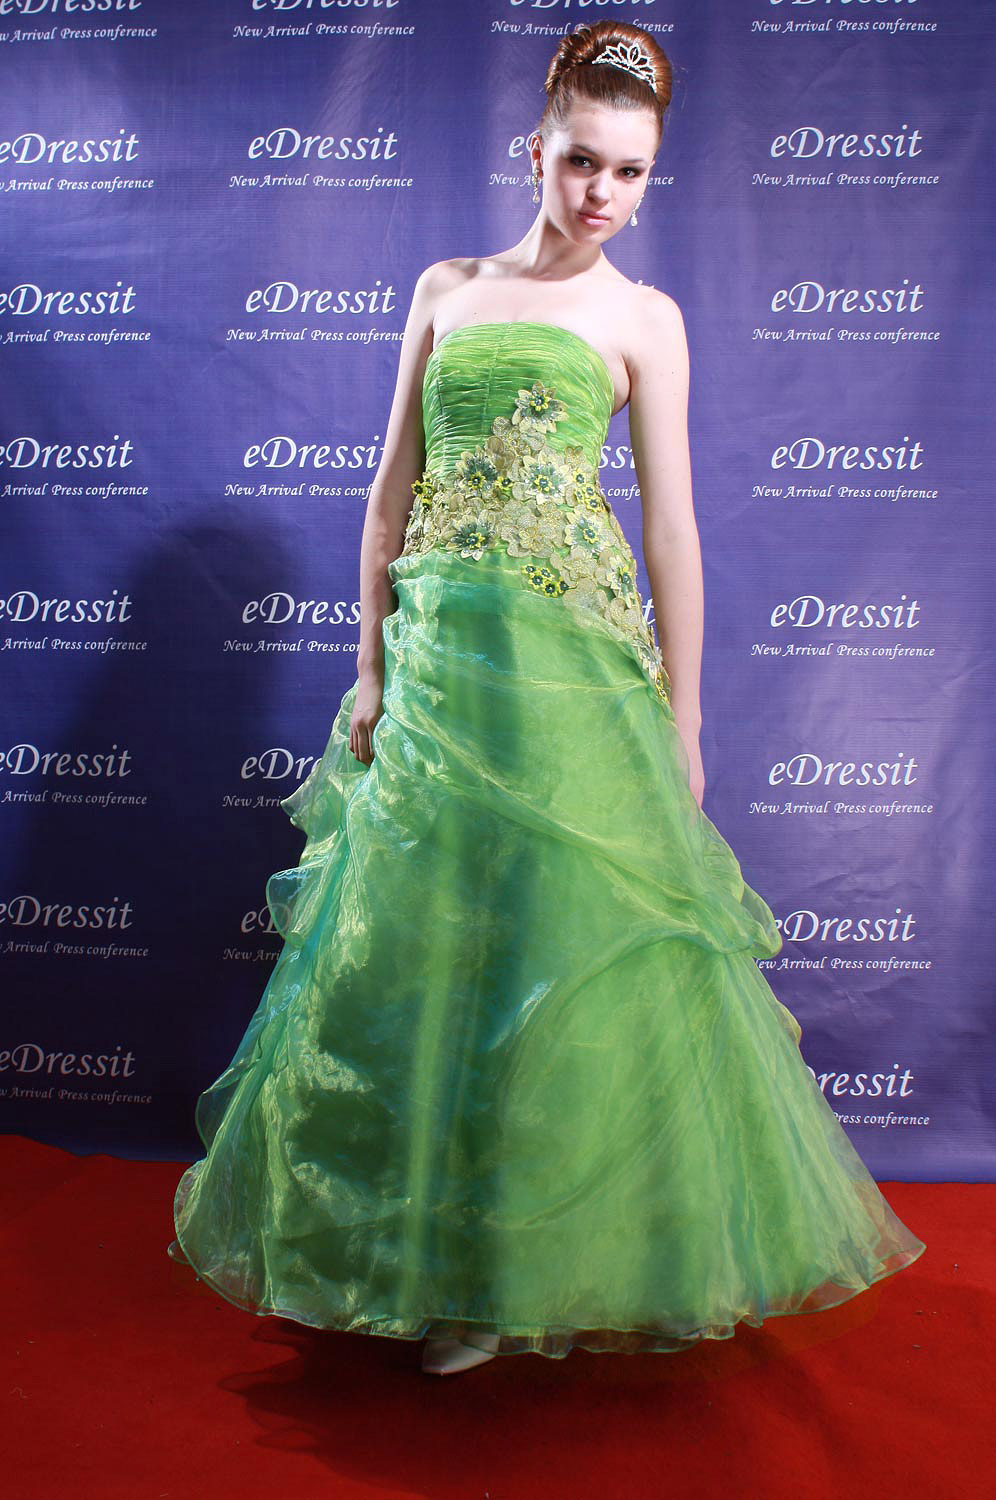 50% ON SALE!  eDressit Prom Gown free petticoat (01080204)